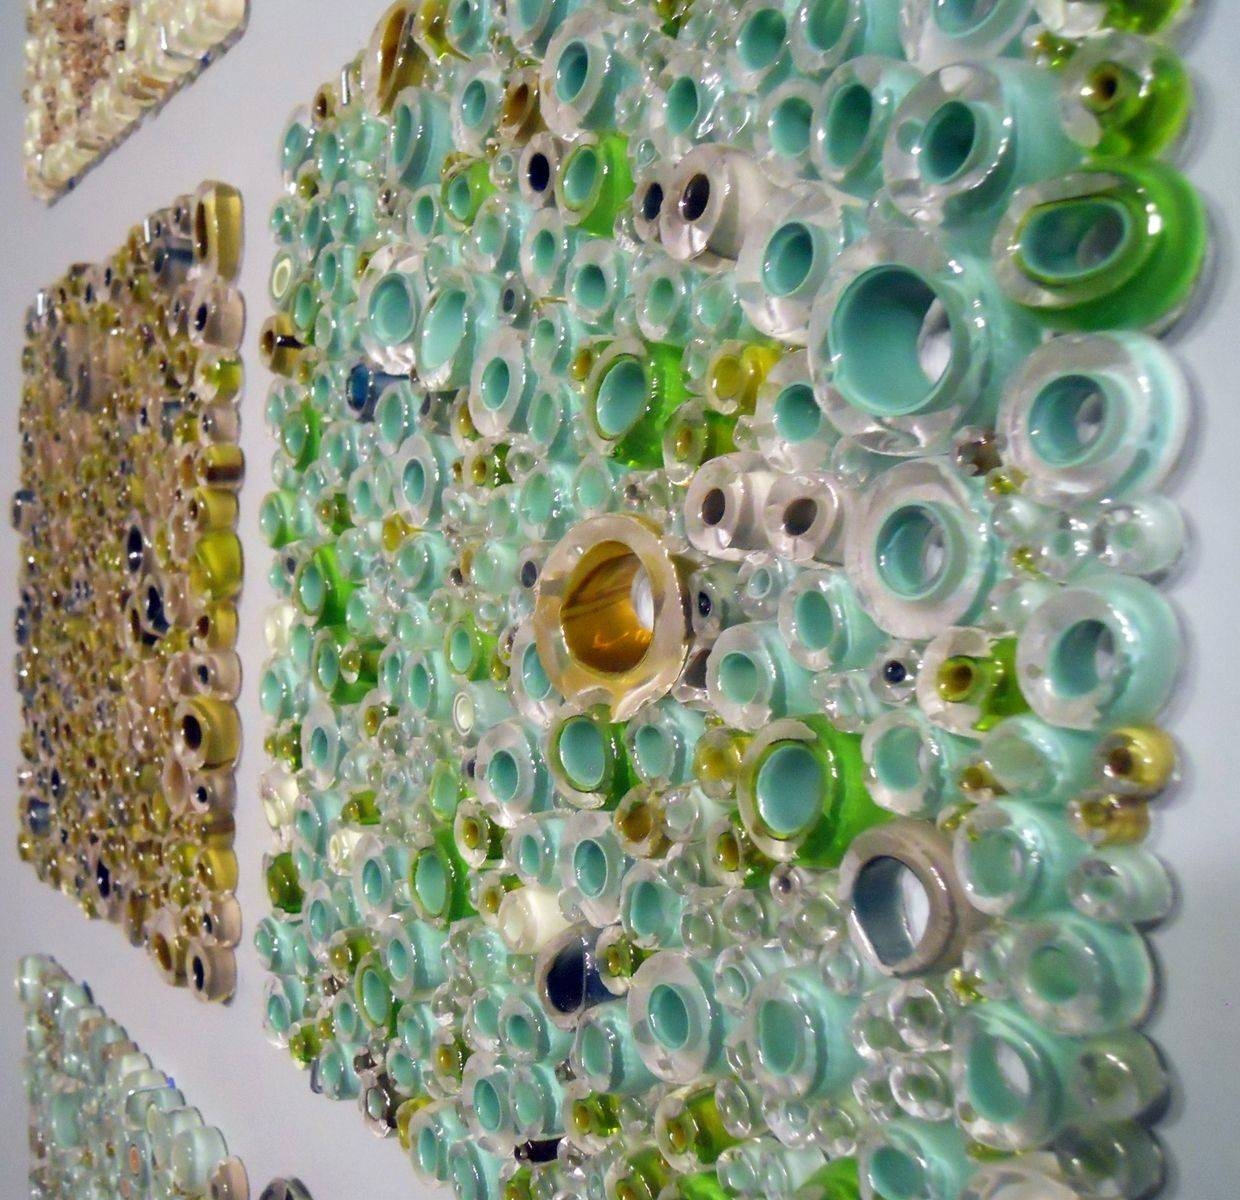 Handmade Glass Wall Panel Art Work, Fused Tubing Serieswolf Intended For Recent Fused Glass Wall Art Panels (View 8 of 25)